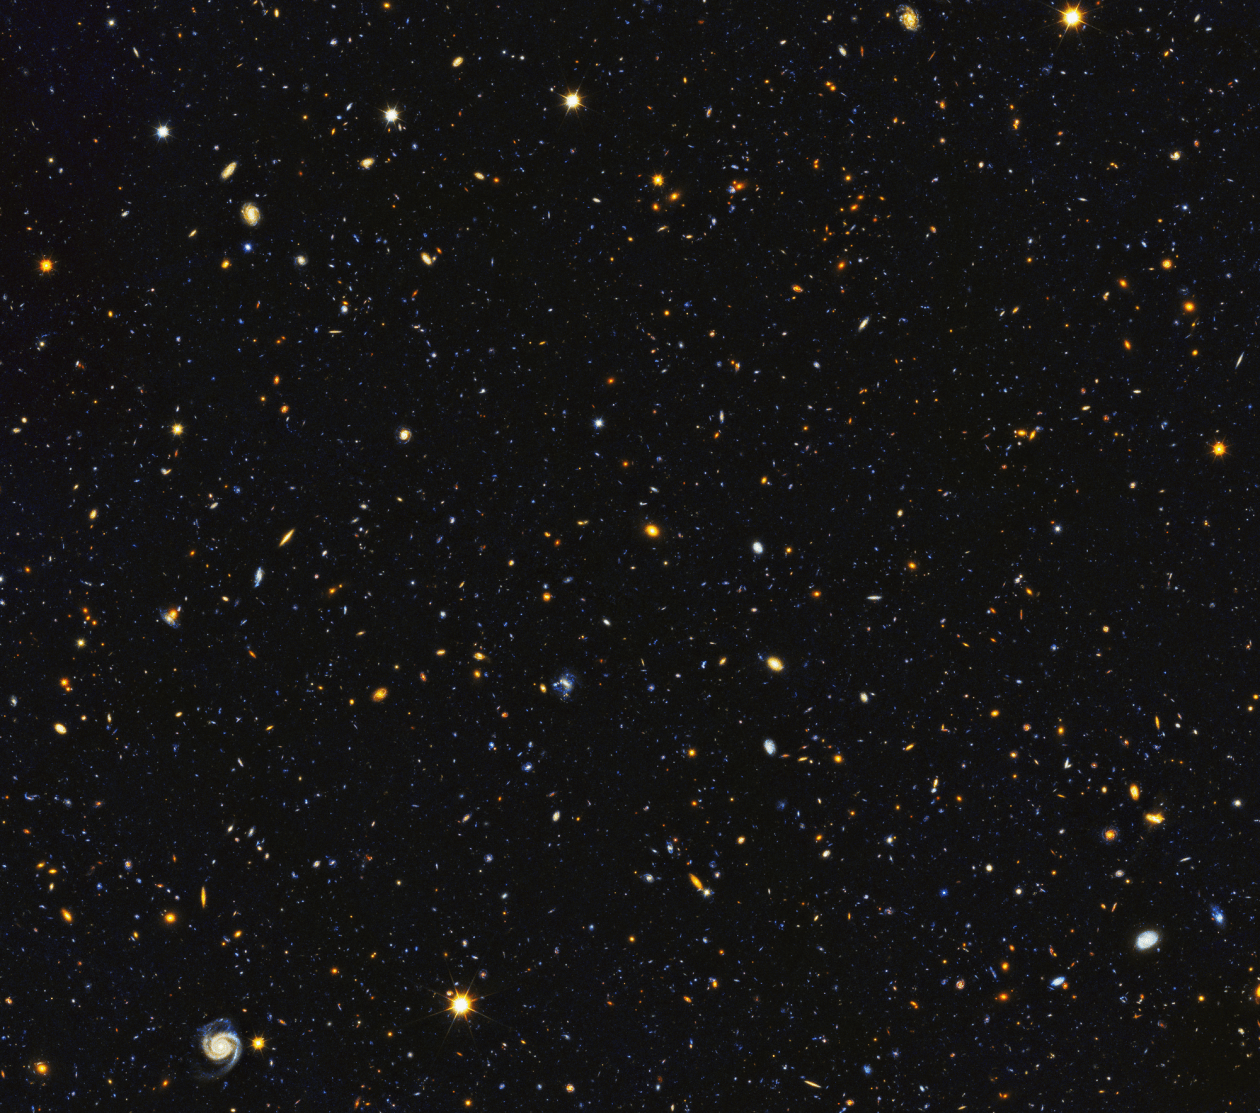 15,000 galaxies appear as small dots and blots in this NASA photograph of the nighttime sky.